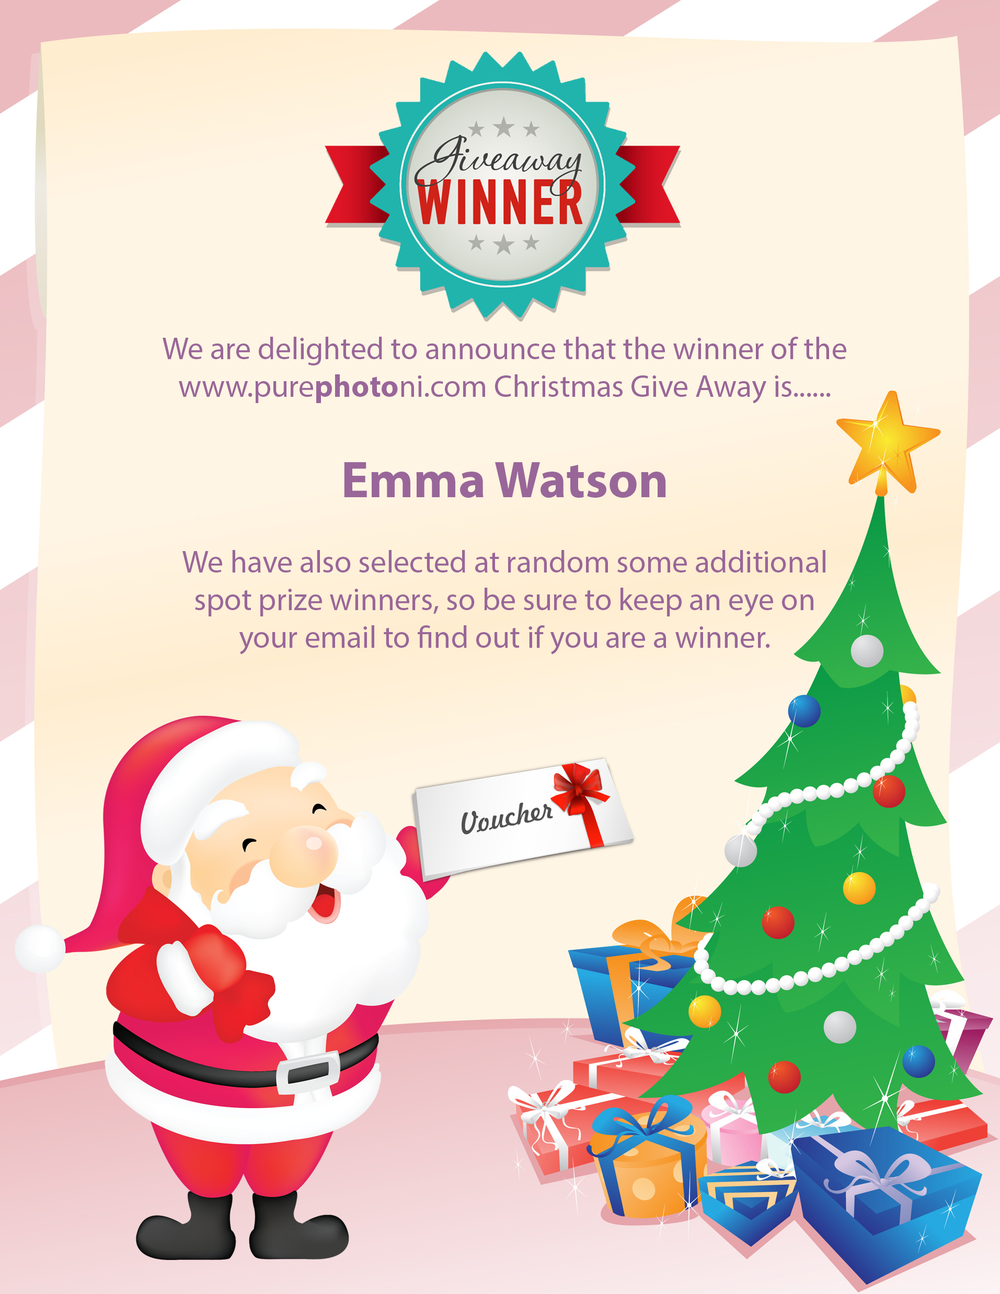 Congratulations to our winner Emma Watson.